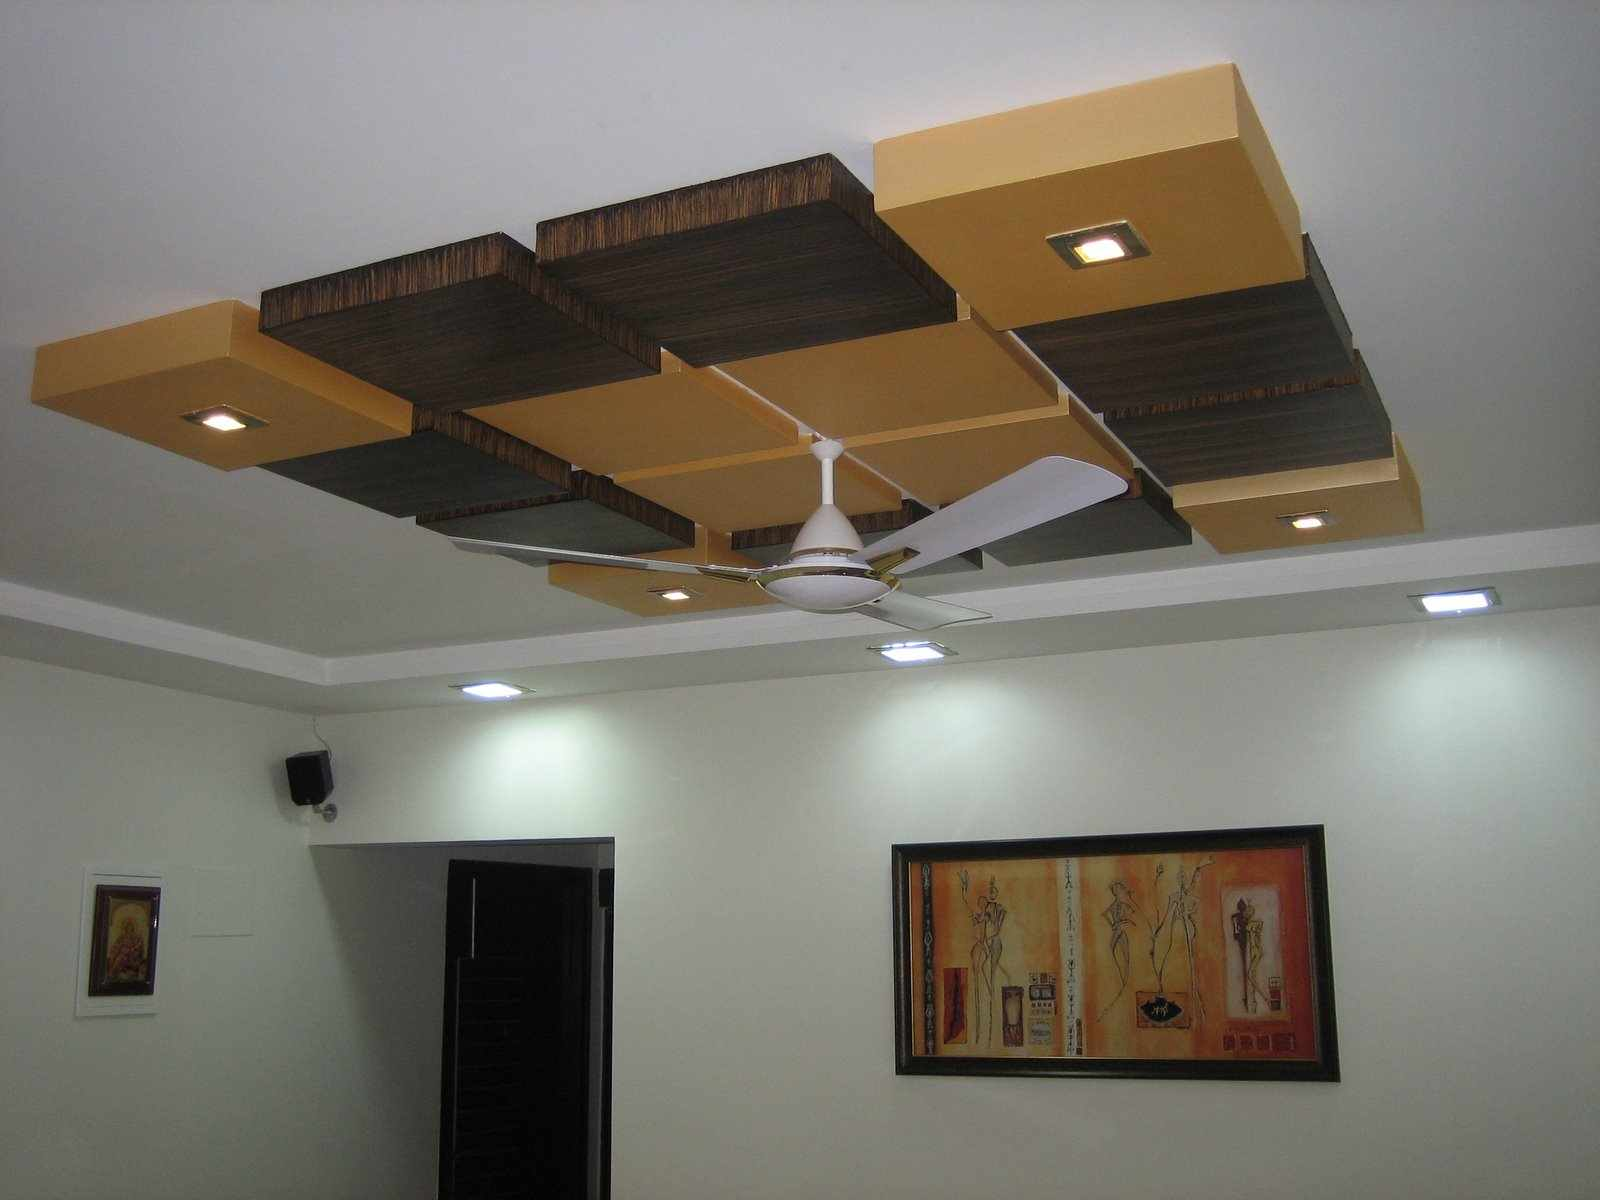 Modern pop false ceiling designs for bedroom interior 2014 for Interior house design ceiling